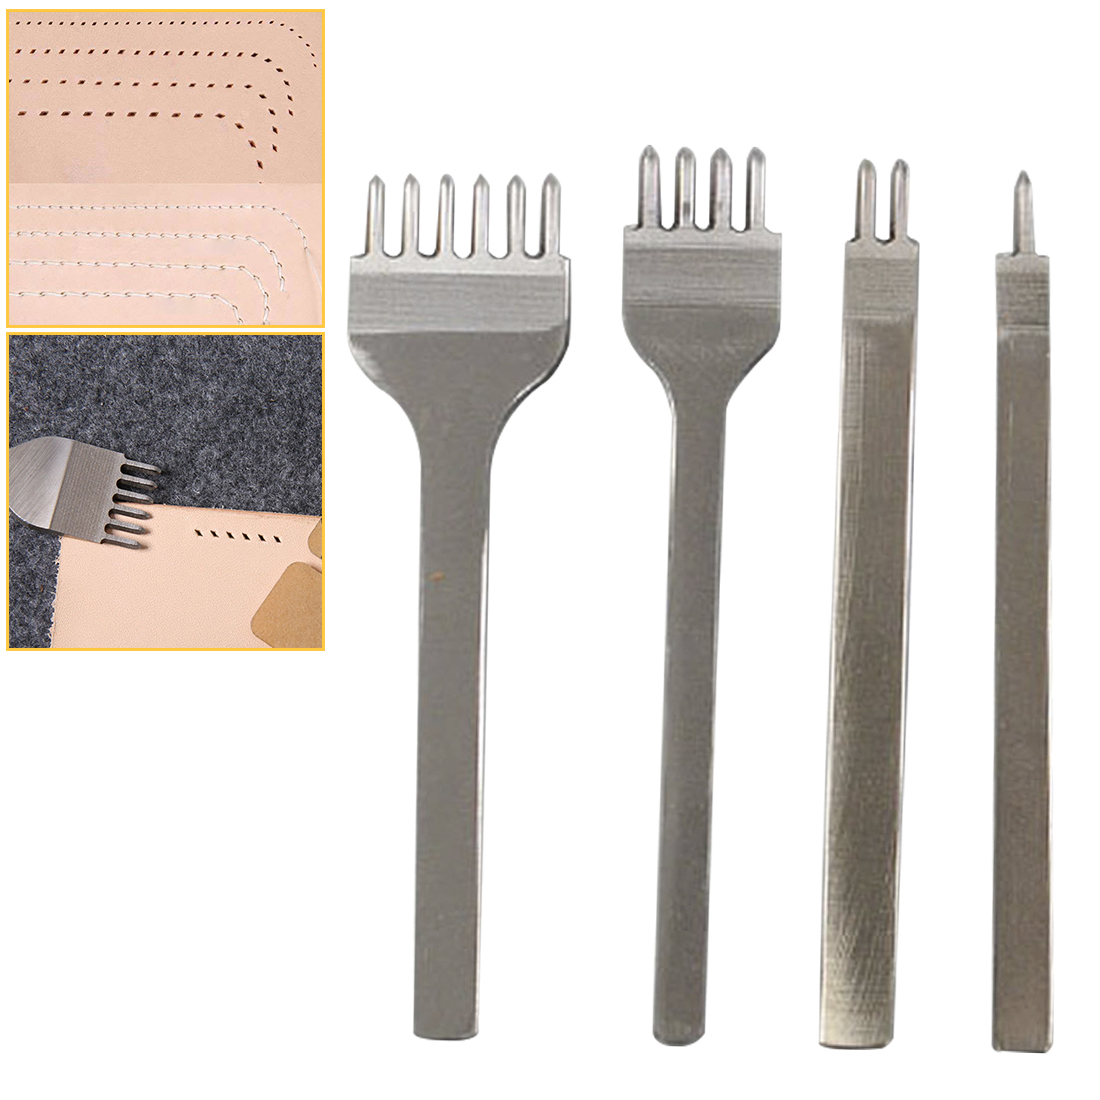 4mm Spacing Leather Hole Punches DIY Handmade Round Stitching Punch Tools Hole Cutter Leather Punching Tool 1 2 4 6 Prong